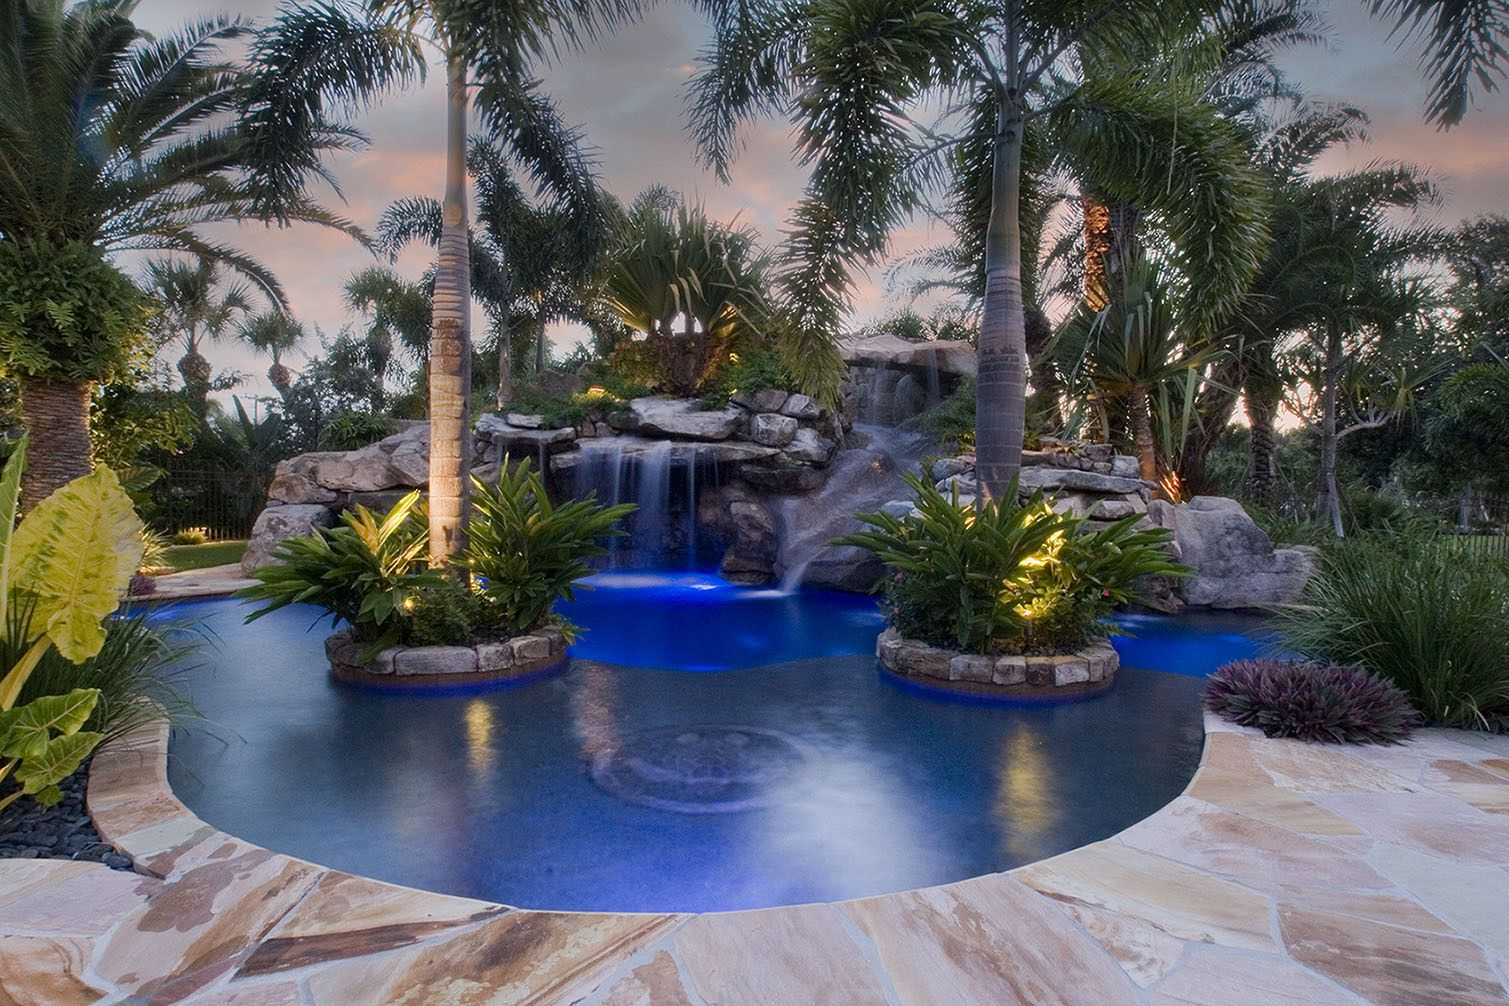 top 10 complete outdoor designs of swimming pools by lucas lagoons - Swimming Pool Designs Florida